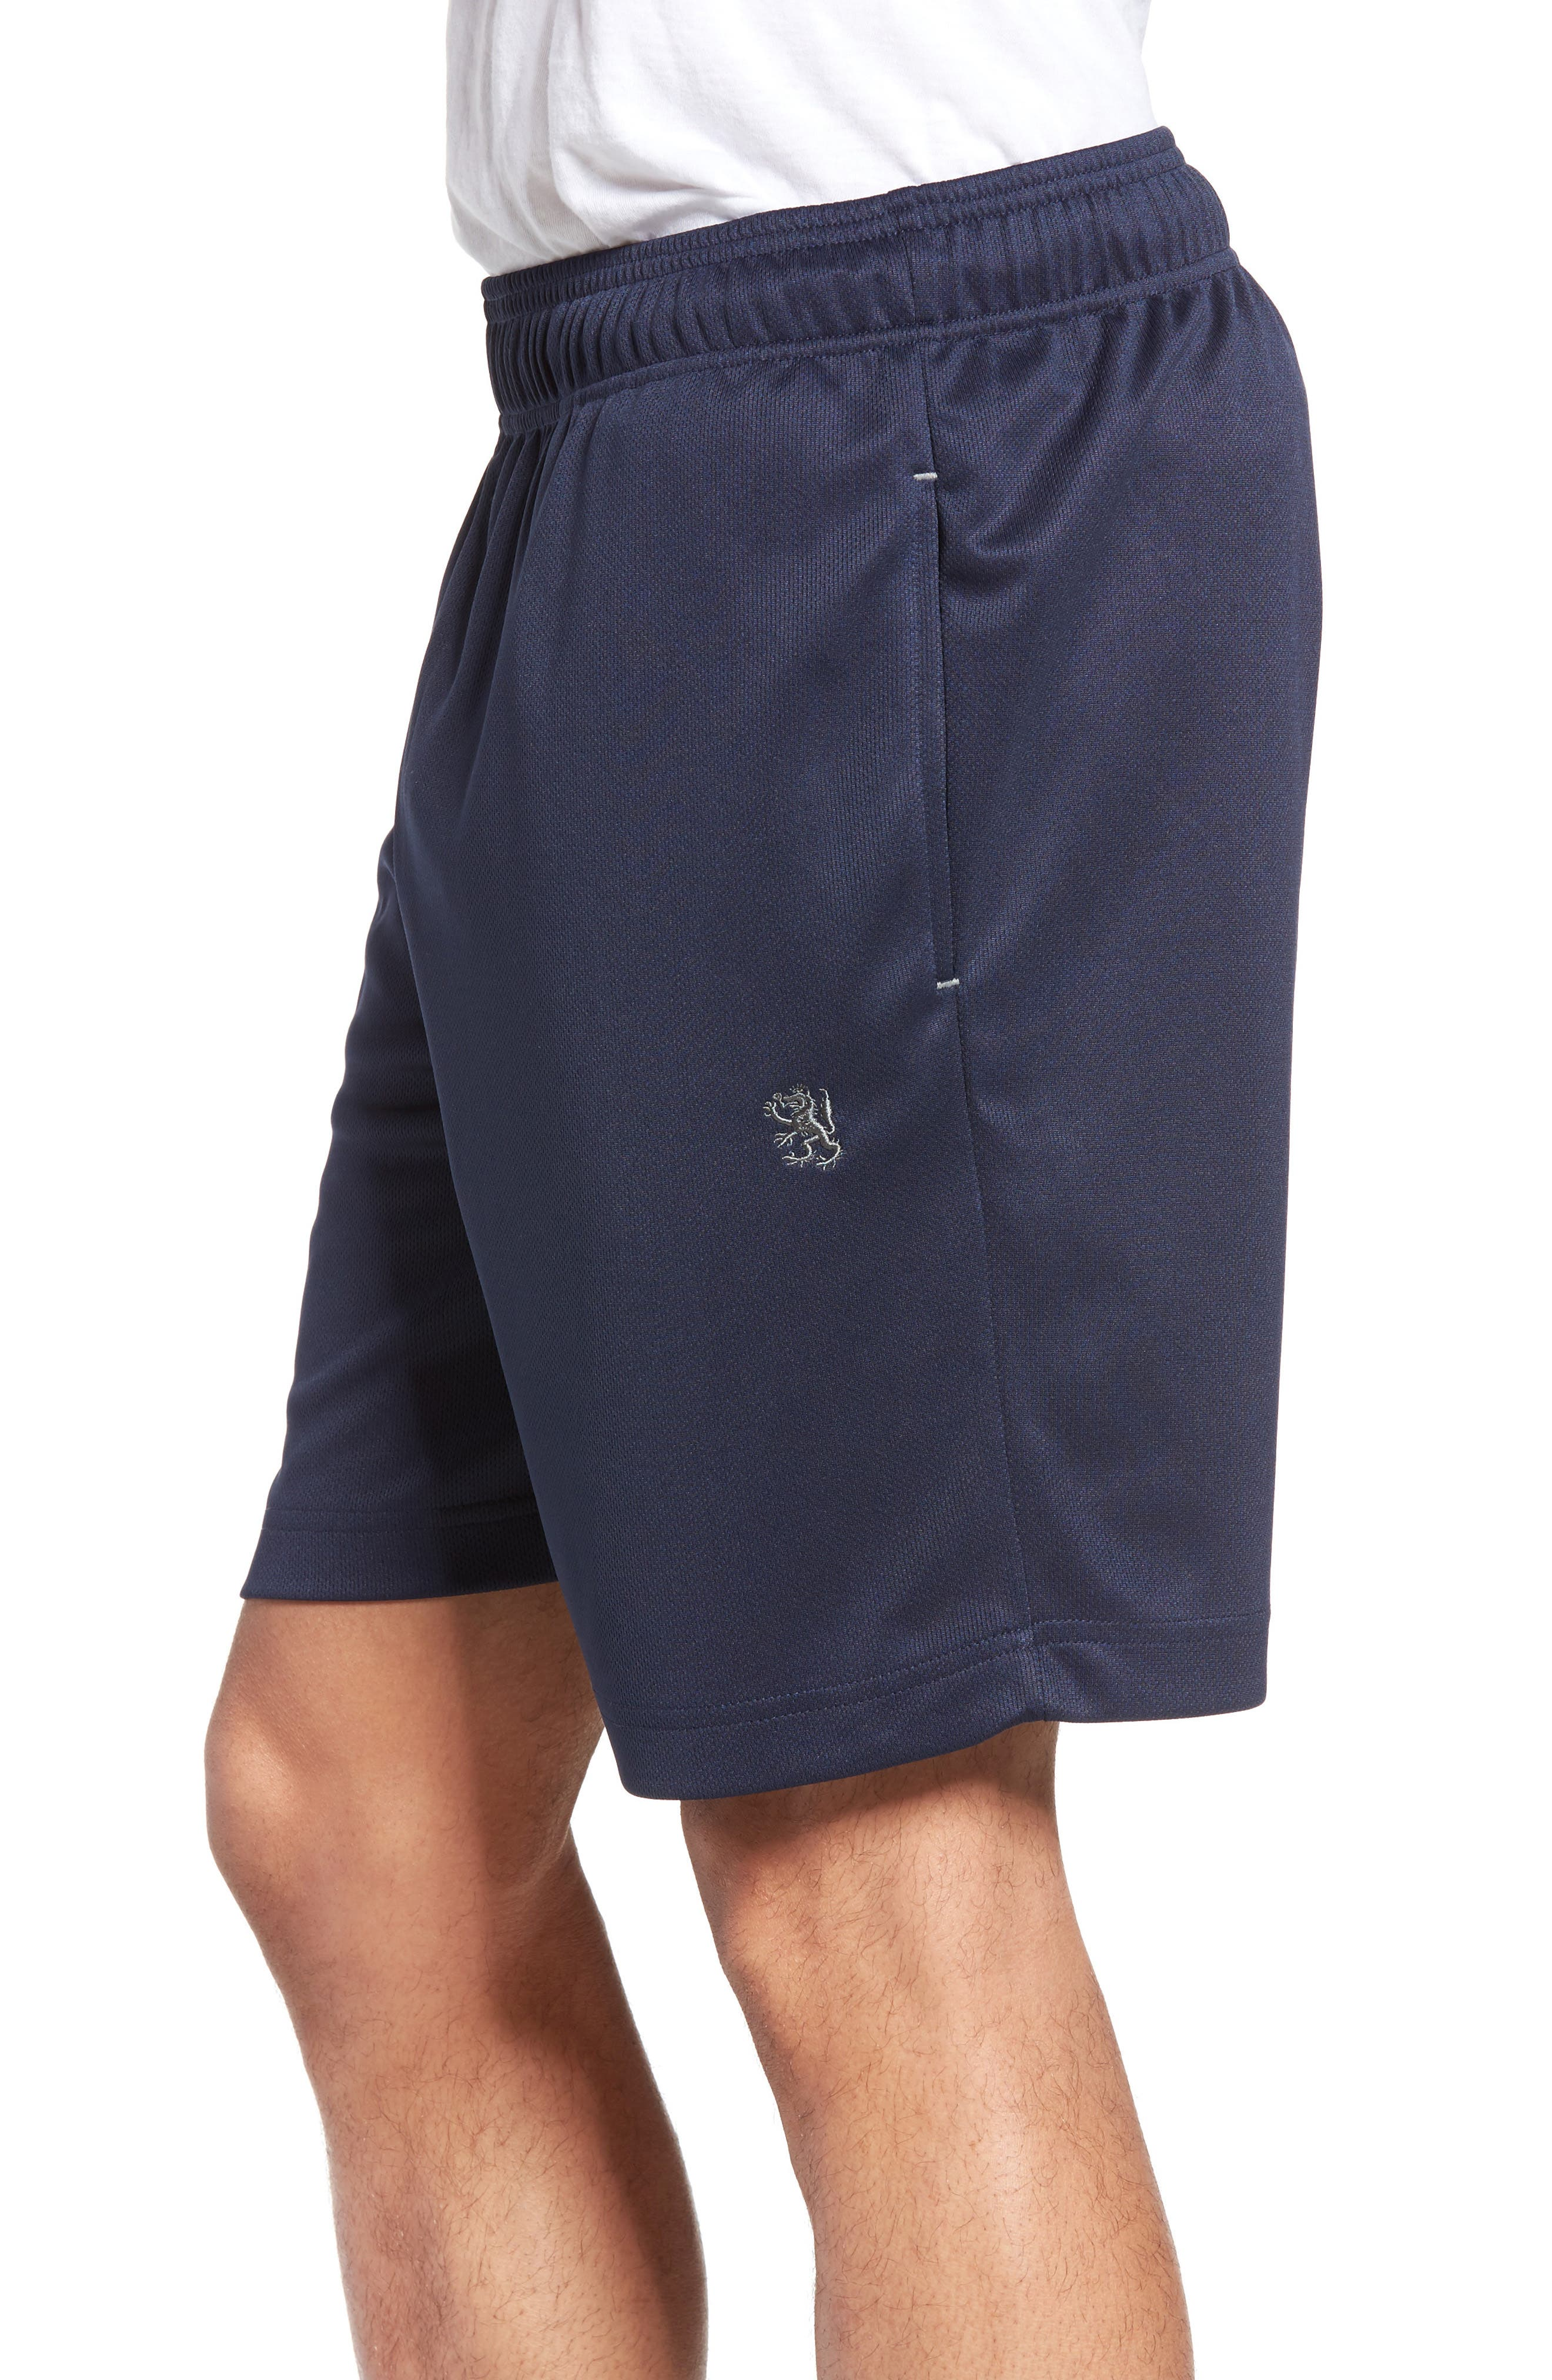 Work Out Lounge Shorts,                             Alternate thumbnail 3, color,                             Navy